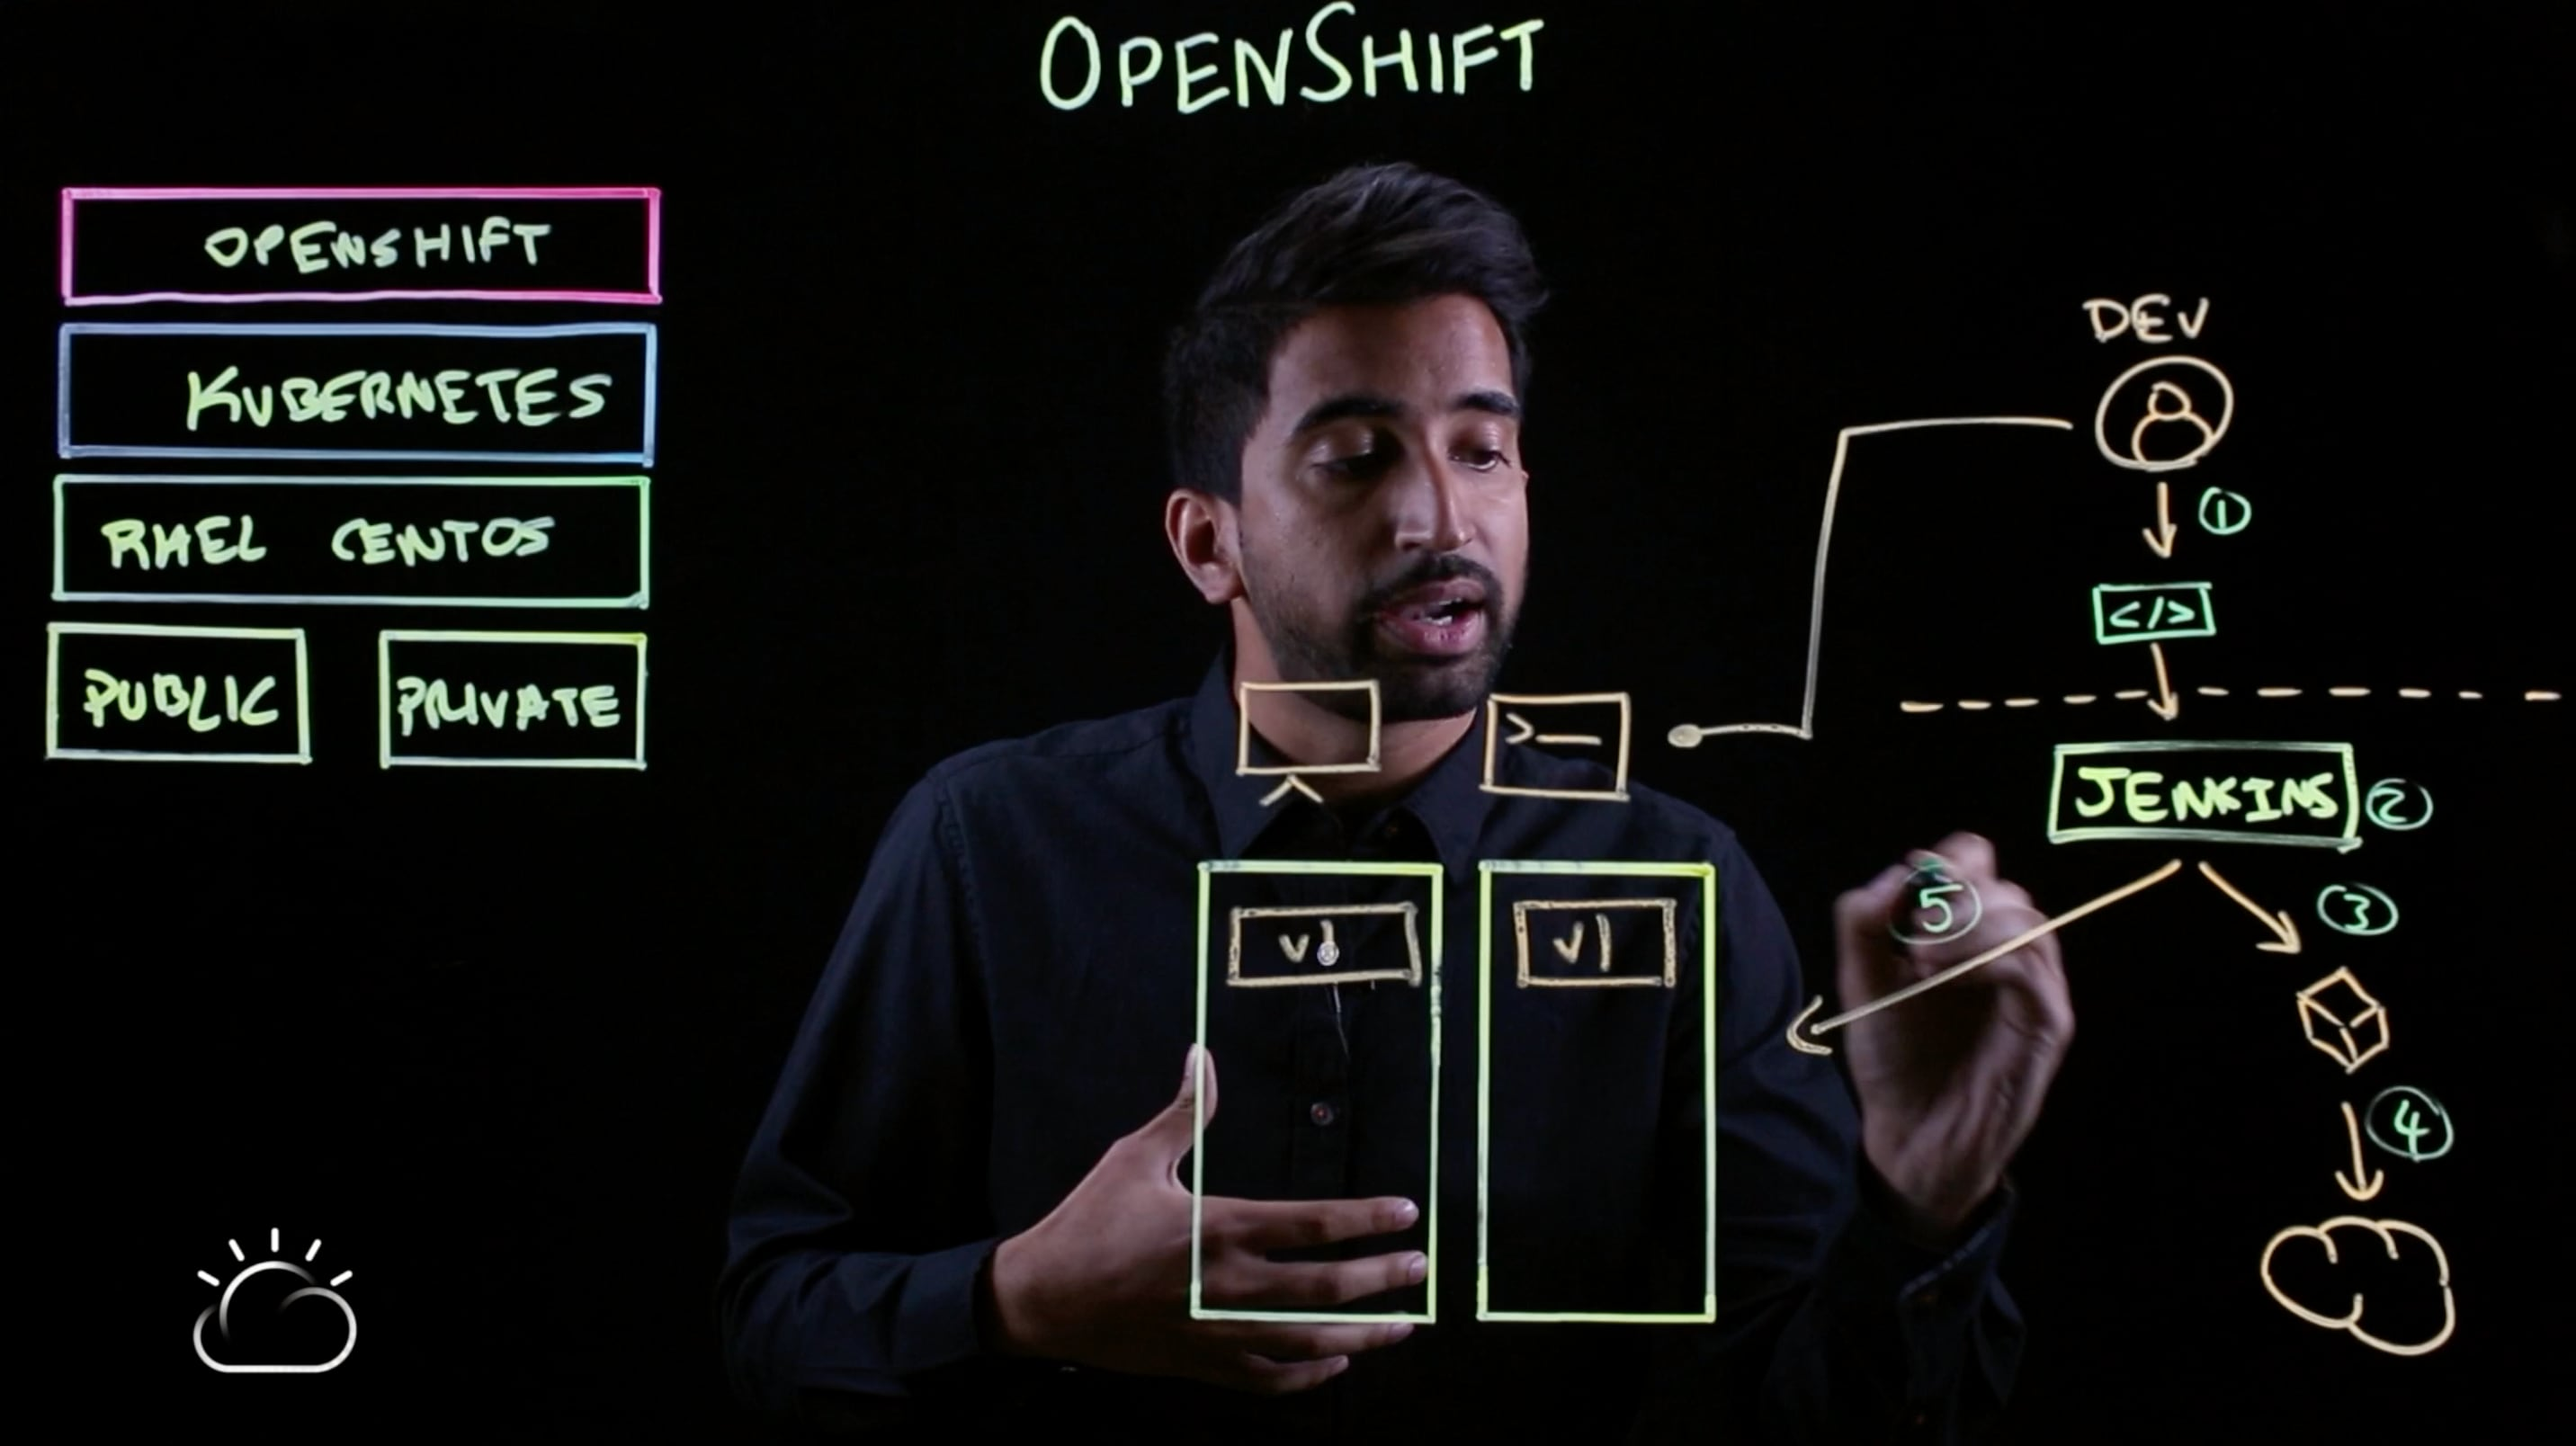 Recap: The developer's interaction with OpenShift